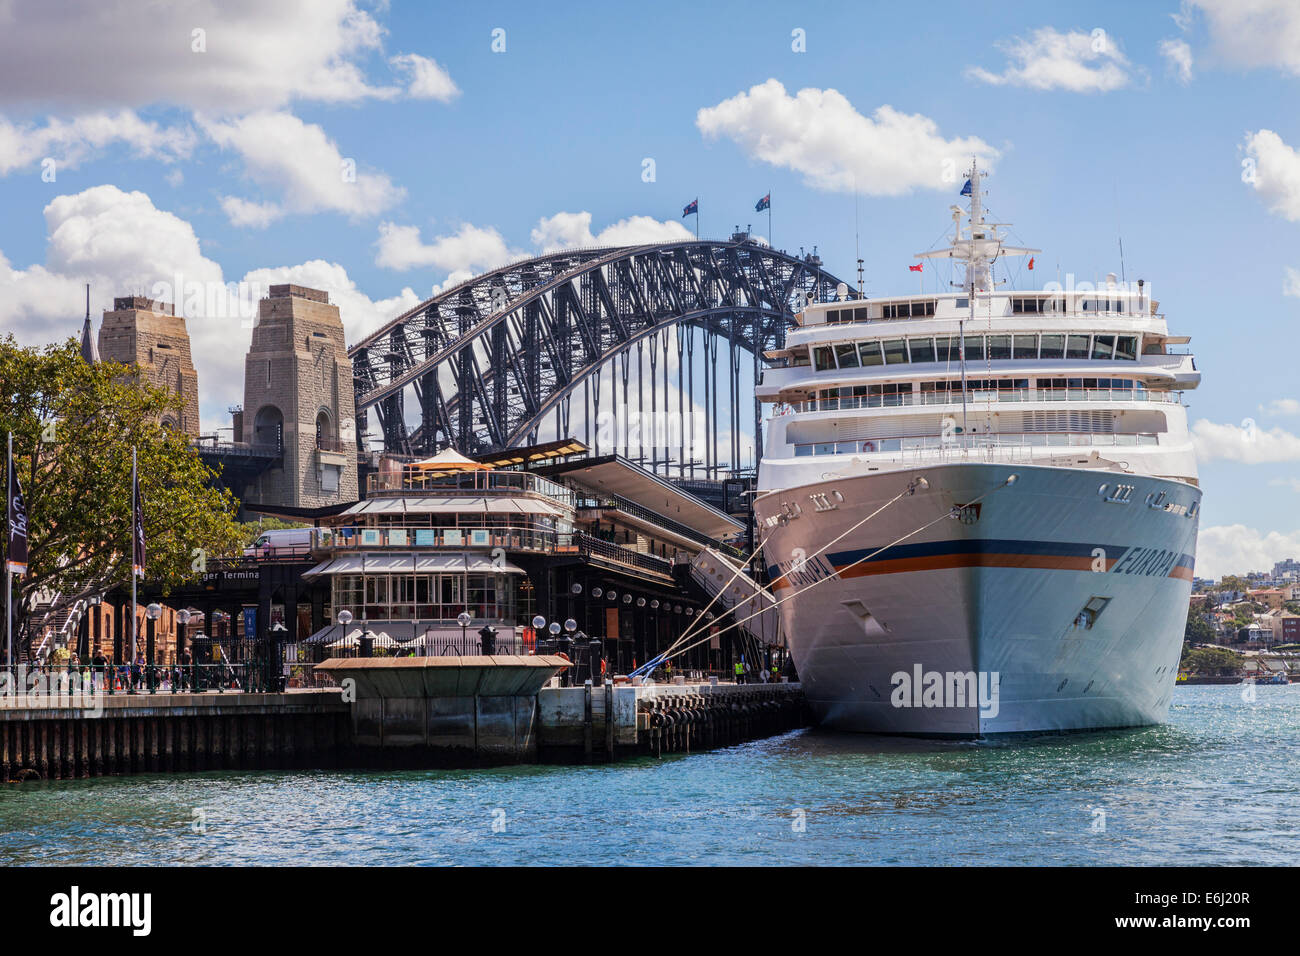 Cruise liner Europa, a ship of the German Hapag-Lloyd company, moored at Circular Quay, Sydney. - Stock Image